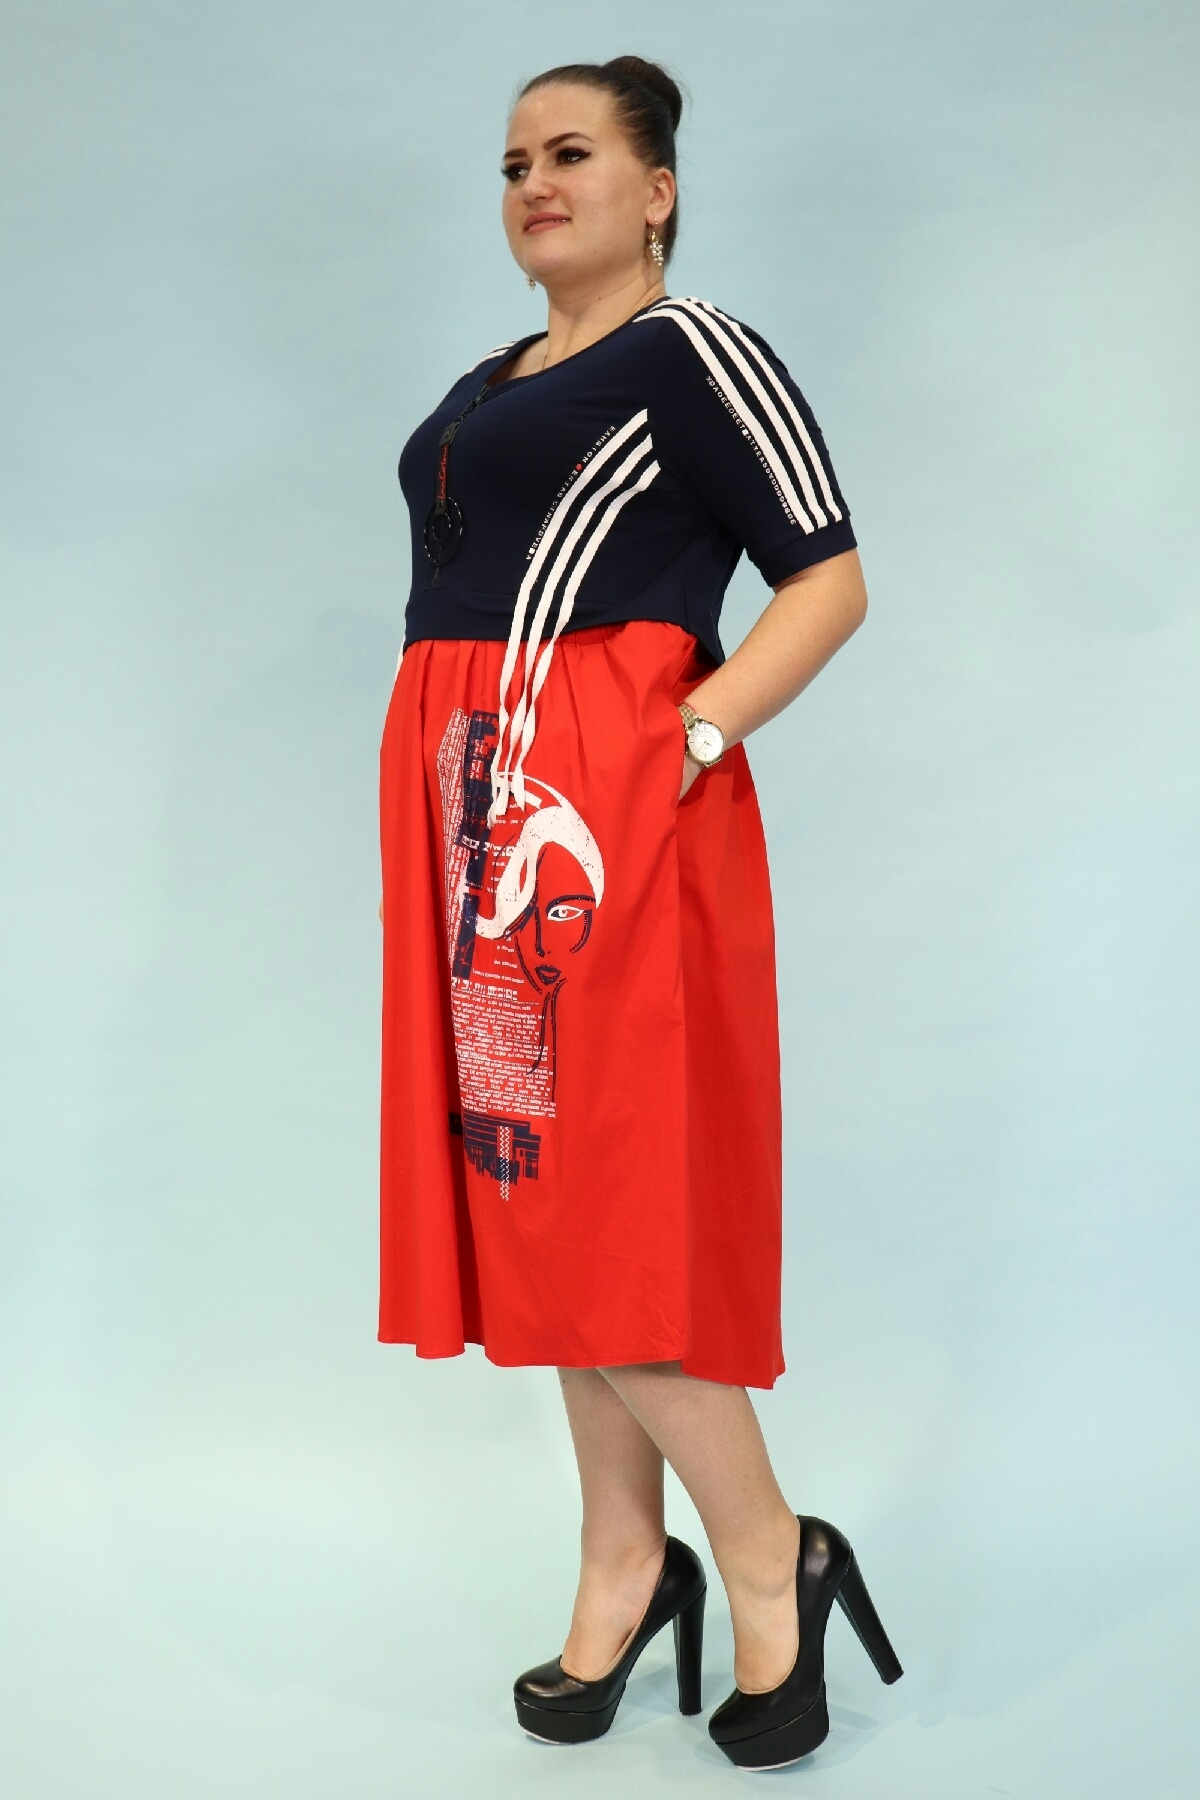 sport stylish baggy dress with short sleeves and pockets